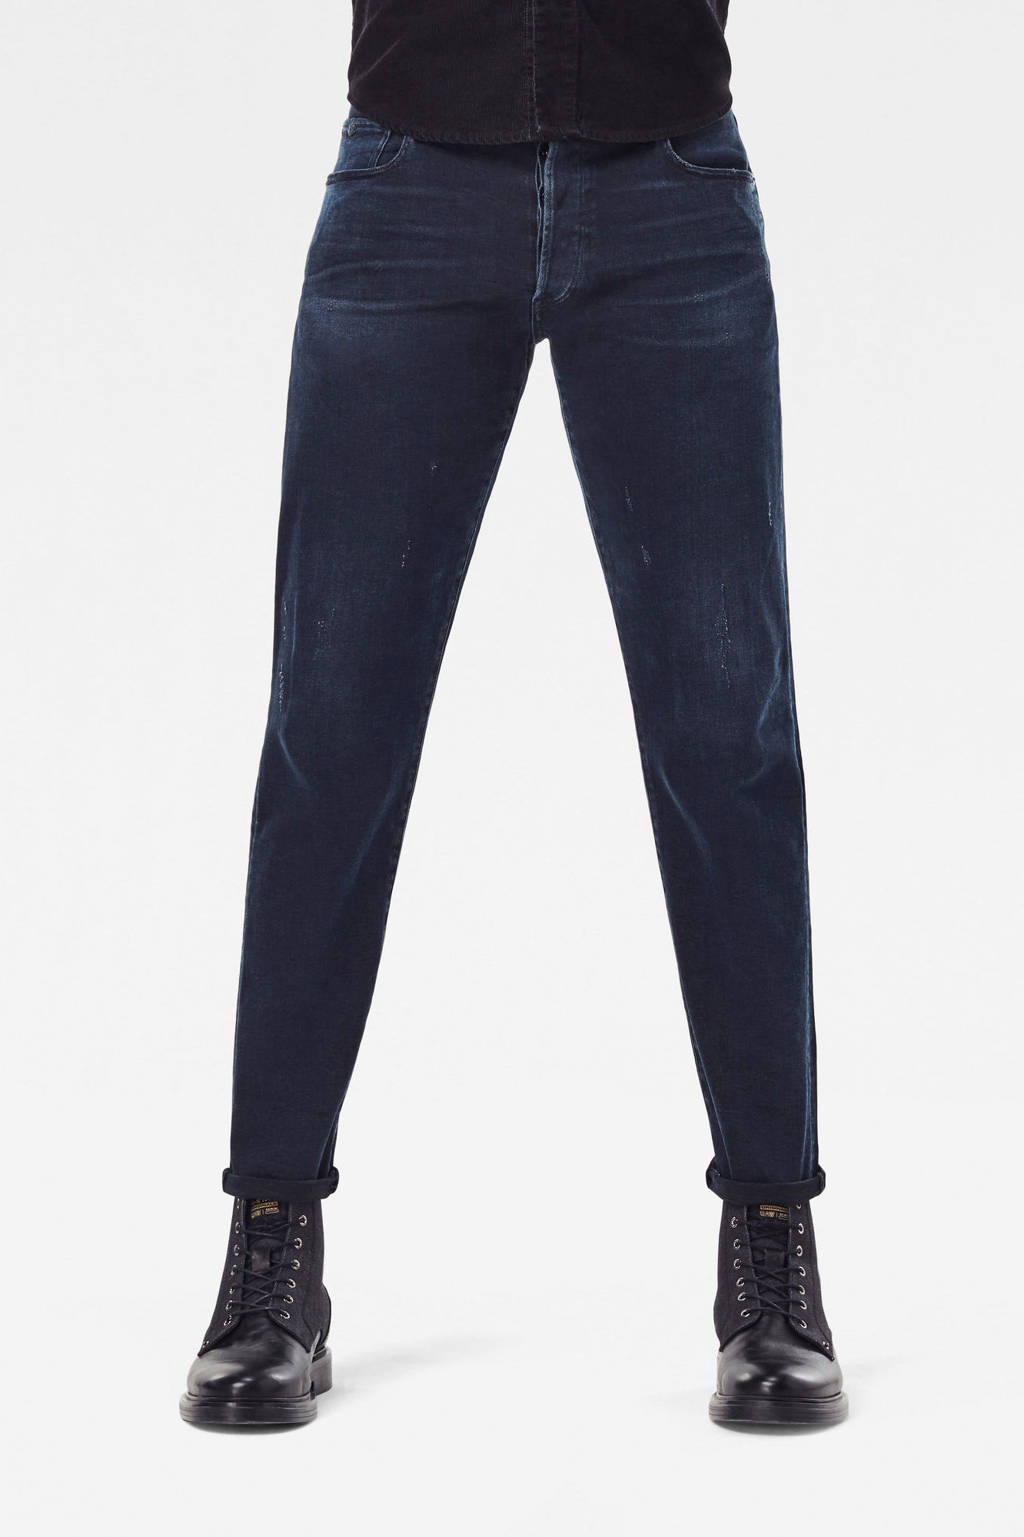 G-Star RAW 3301 slim fit jeans worn in eve destroyed, Worn in eve destroyed